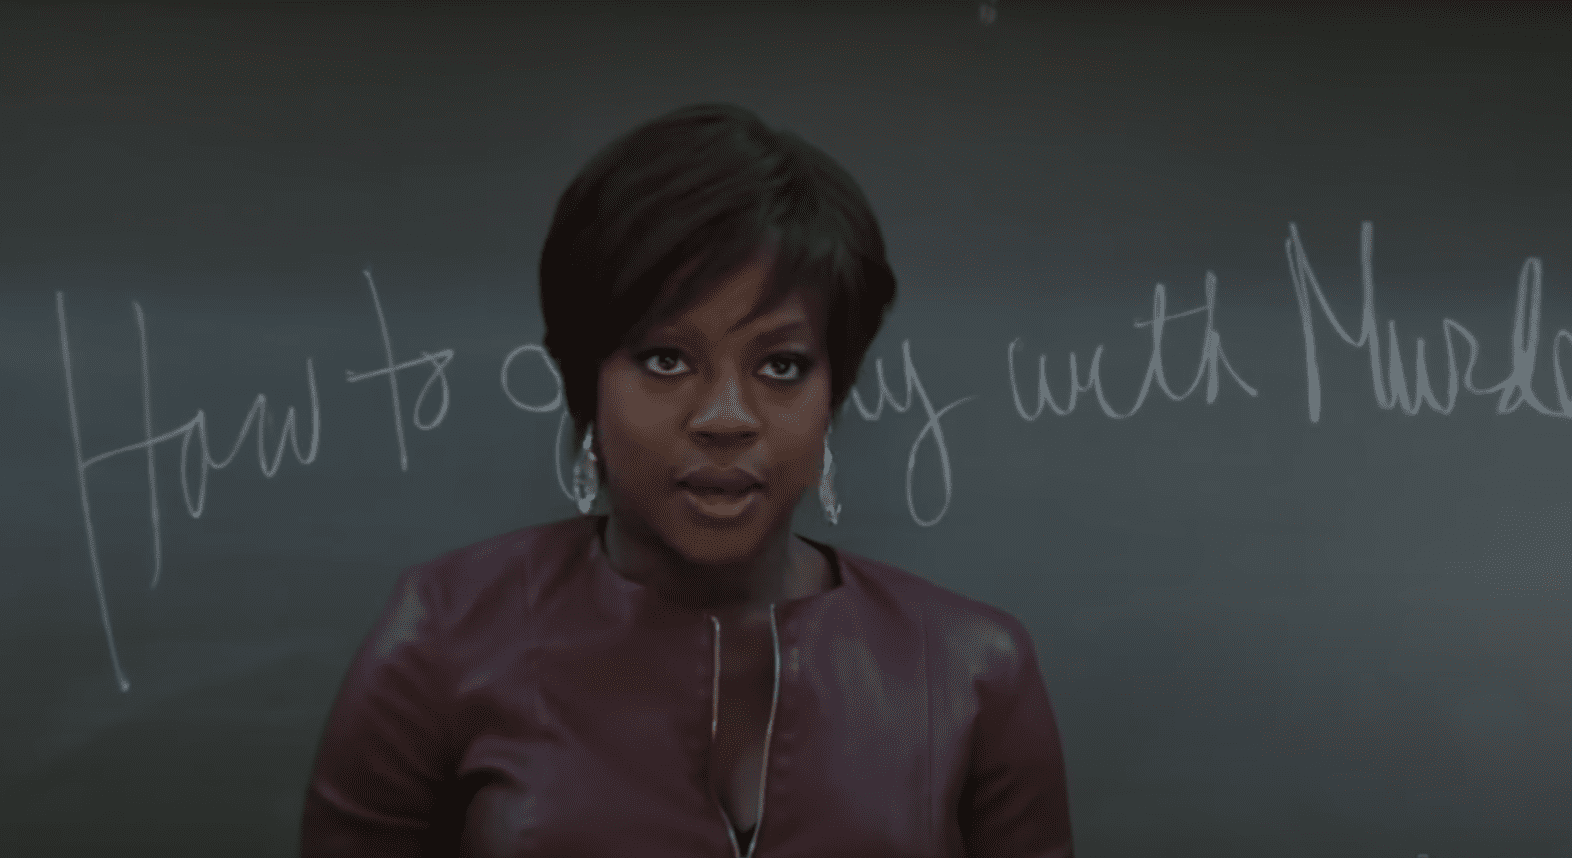 Image Source: Youtube/IGN|How To Get Away With Murder